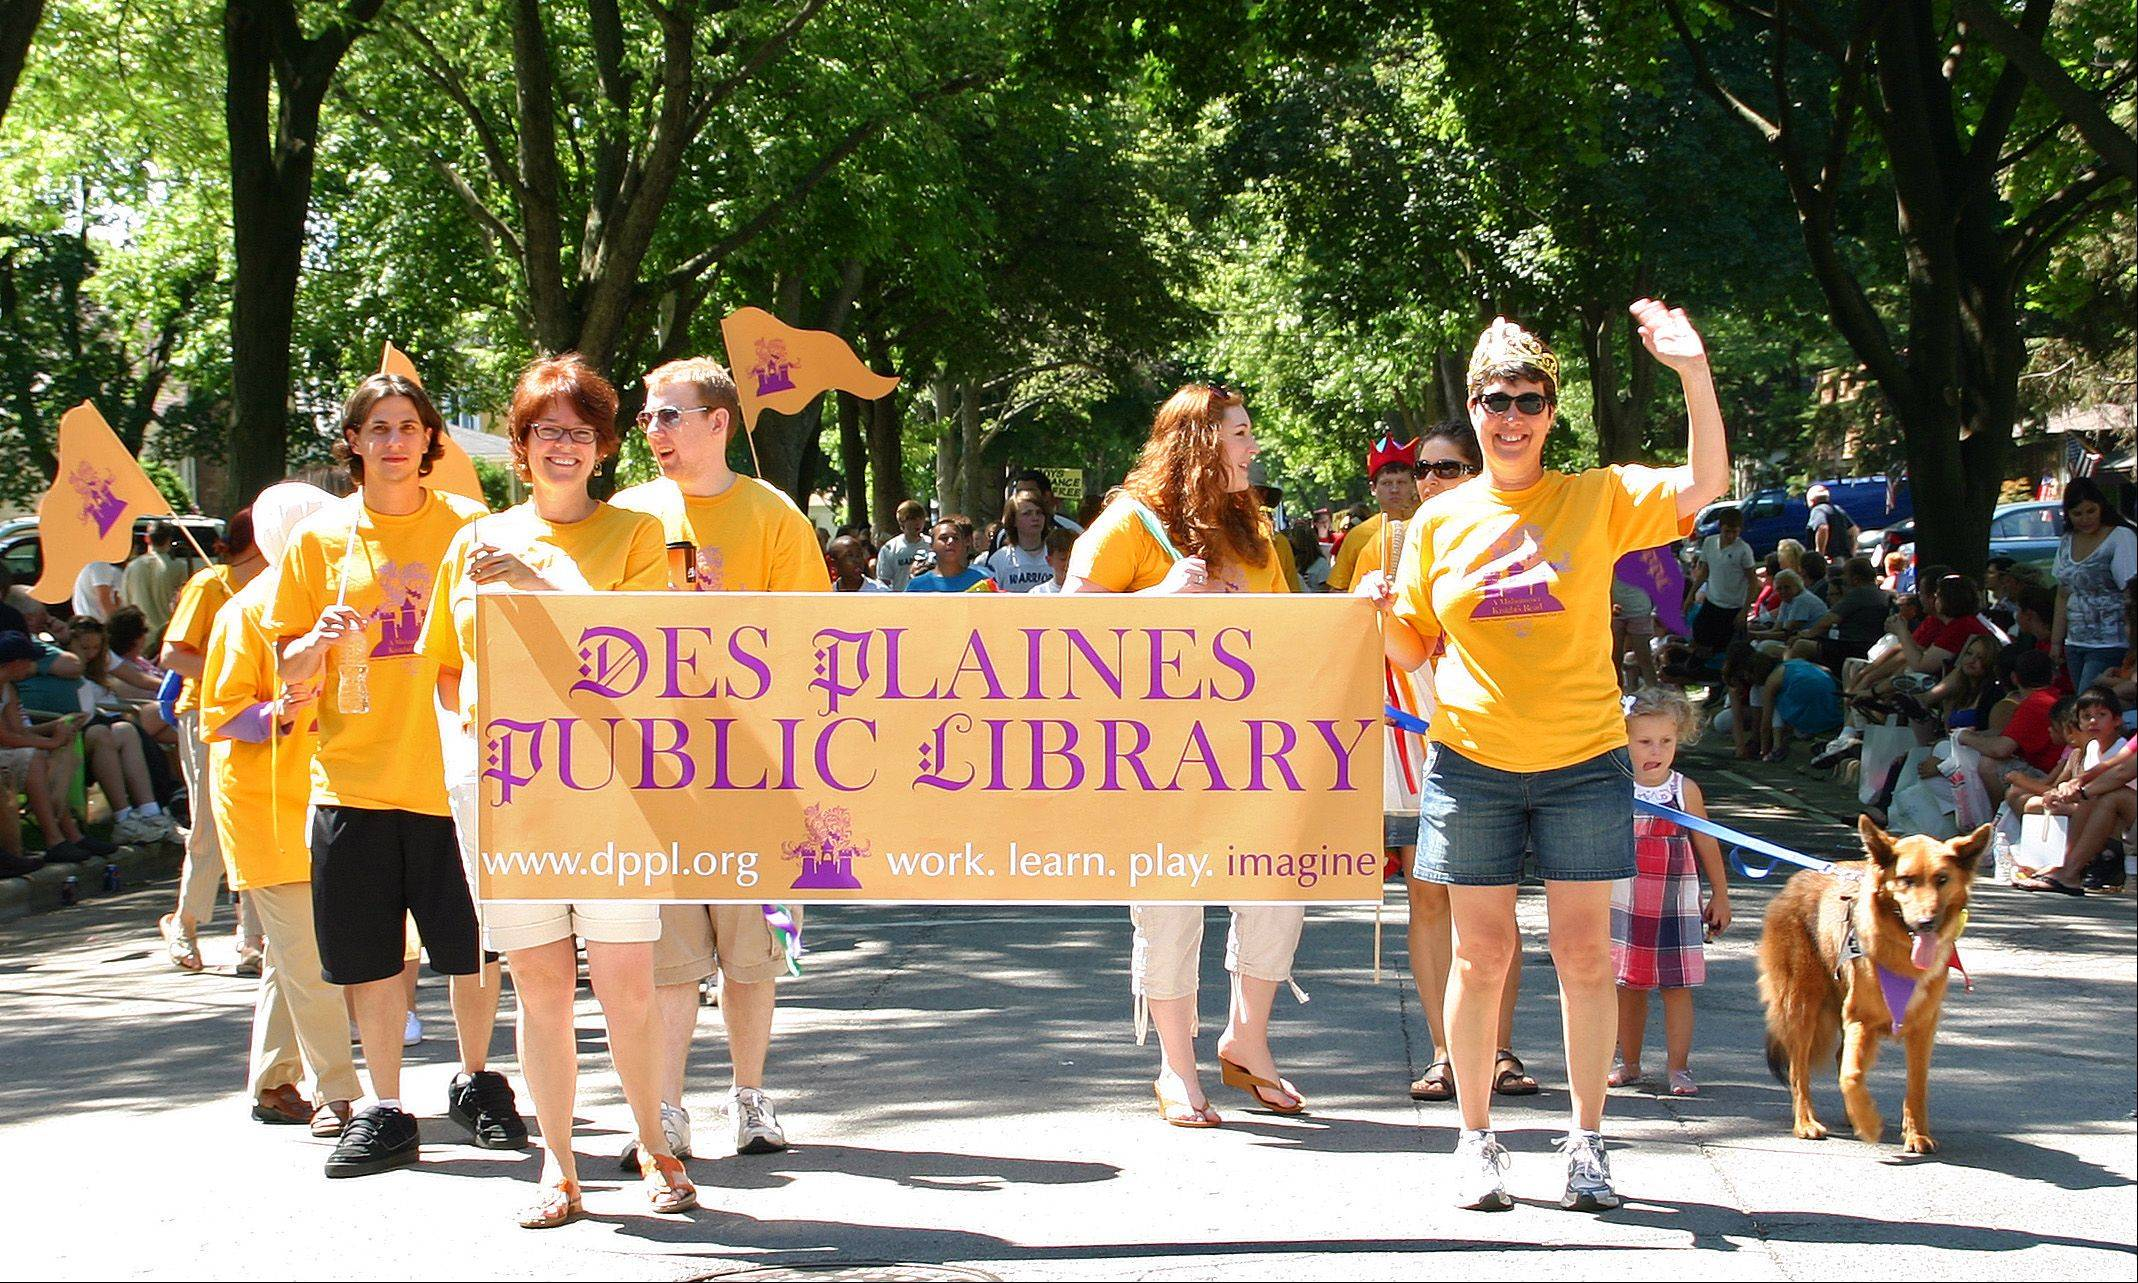 The Des Plaines Public Library Librarians handed out library card forms and information about their summer reading programs in the 2011 Independence Day Parade in Des Plaines.